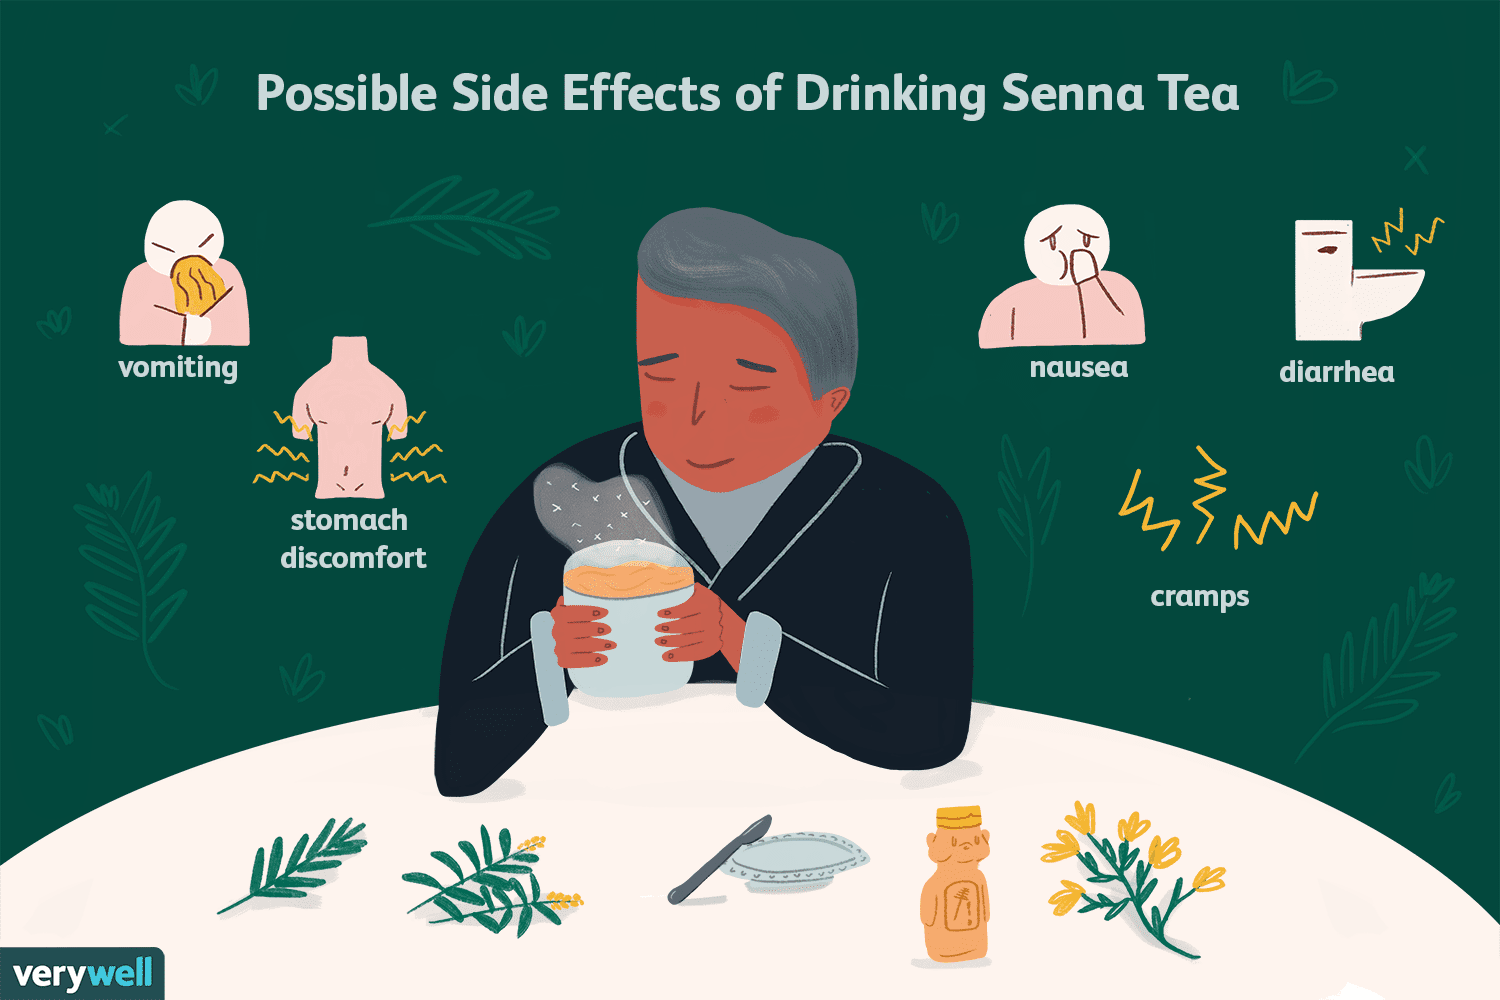 Possible Side Effects of Drinking Senna Tea